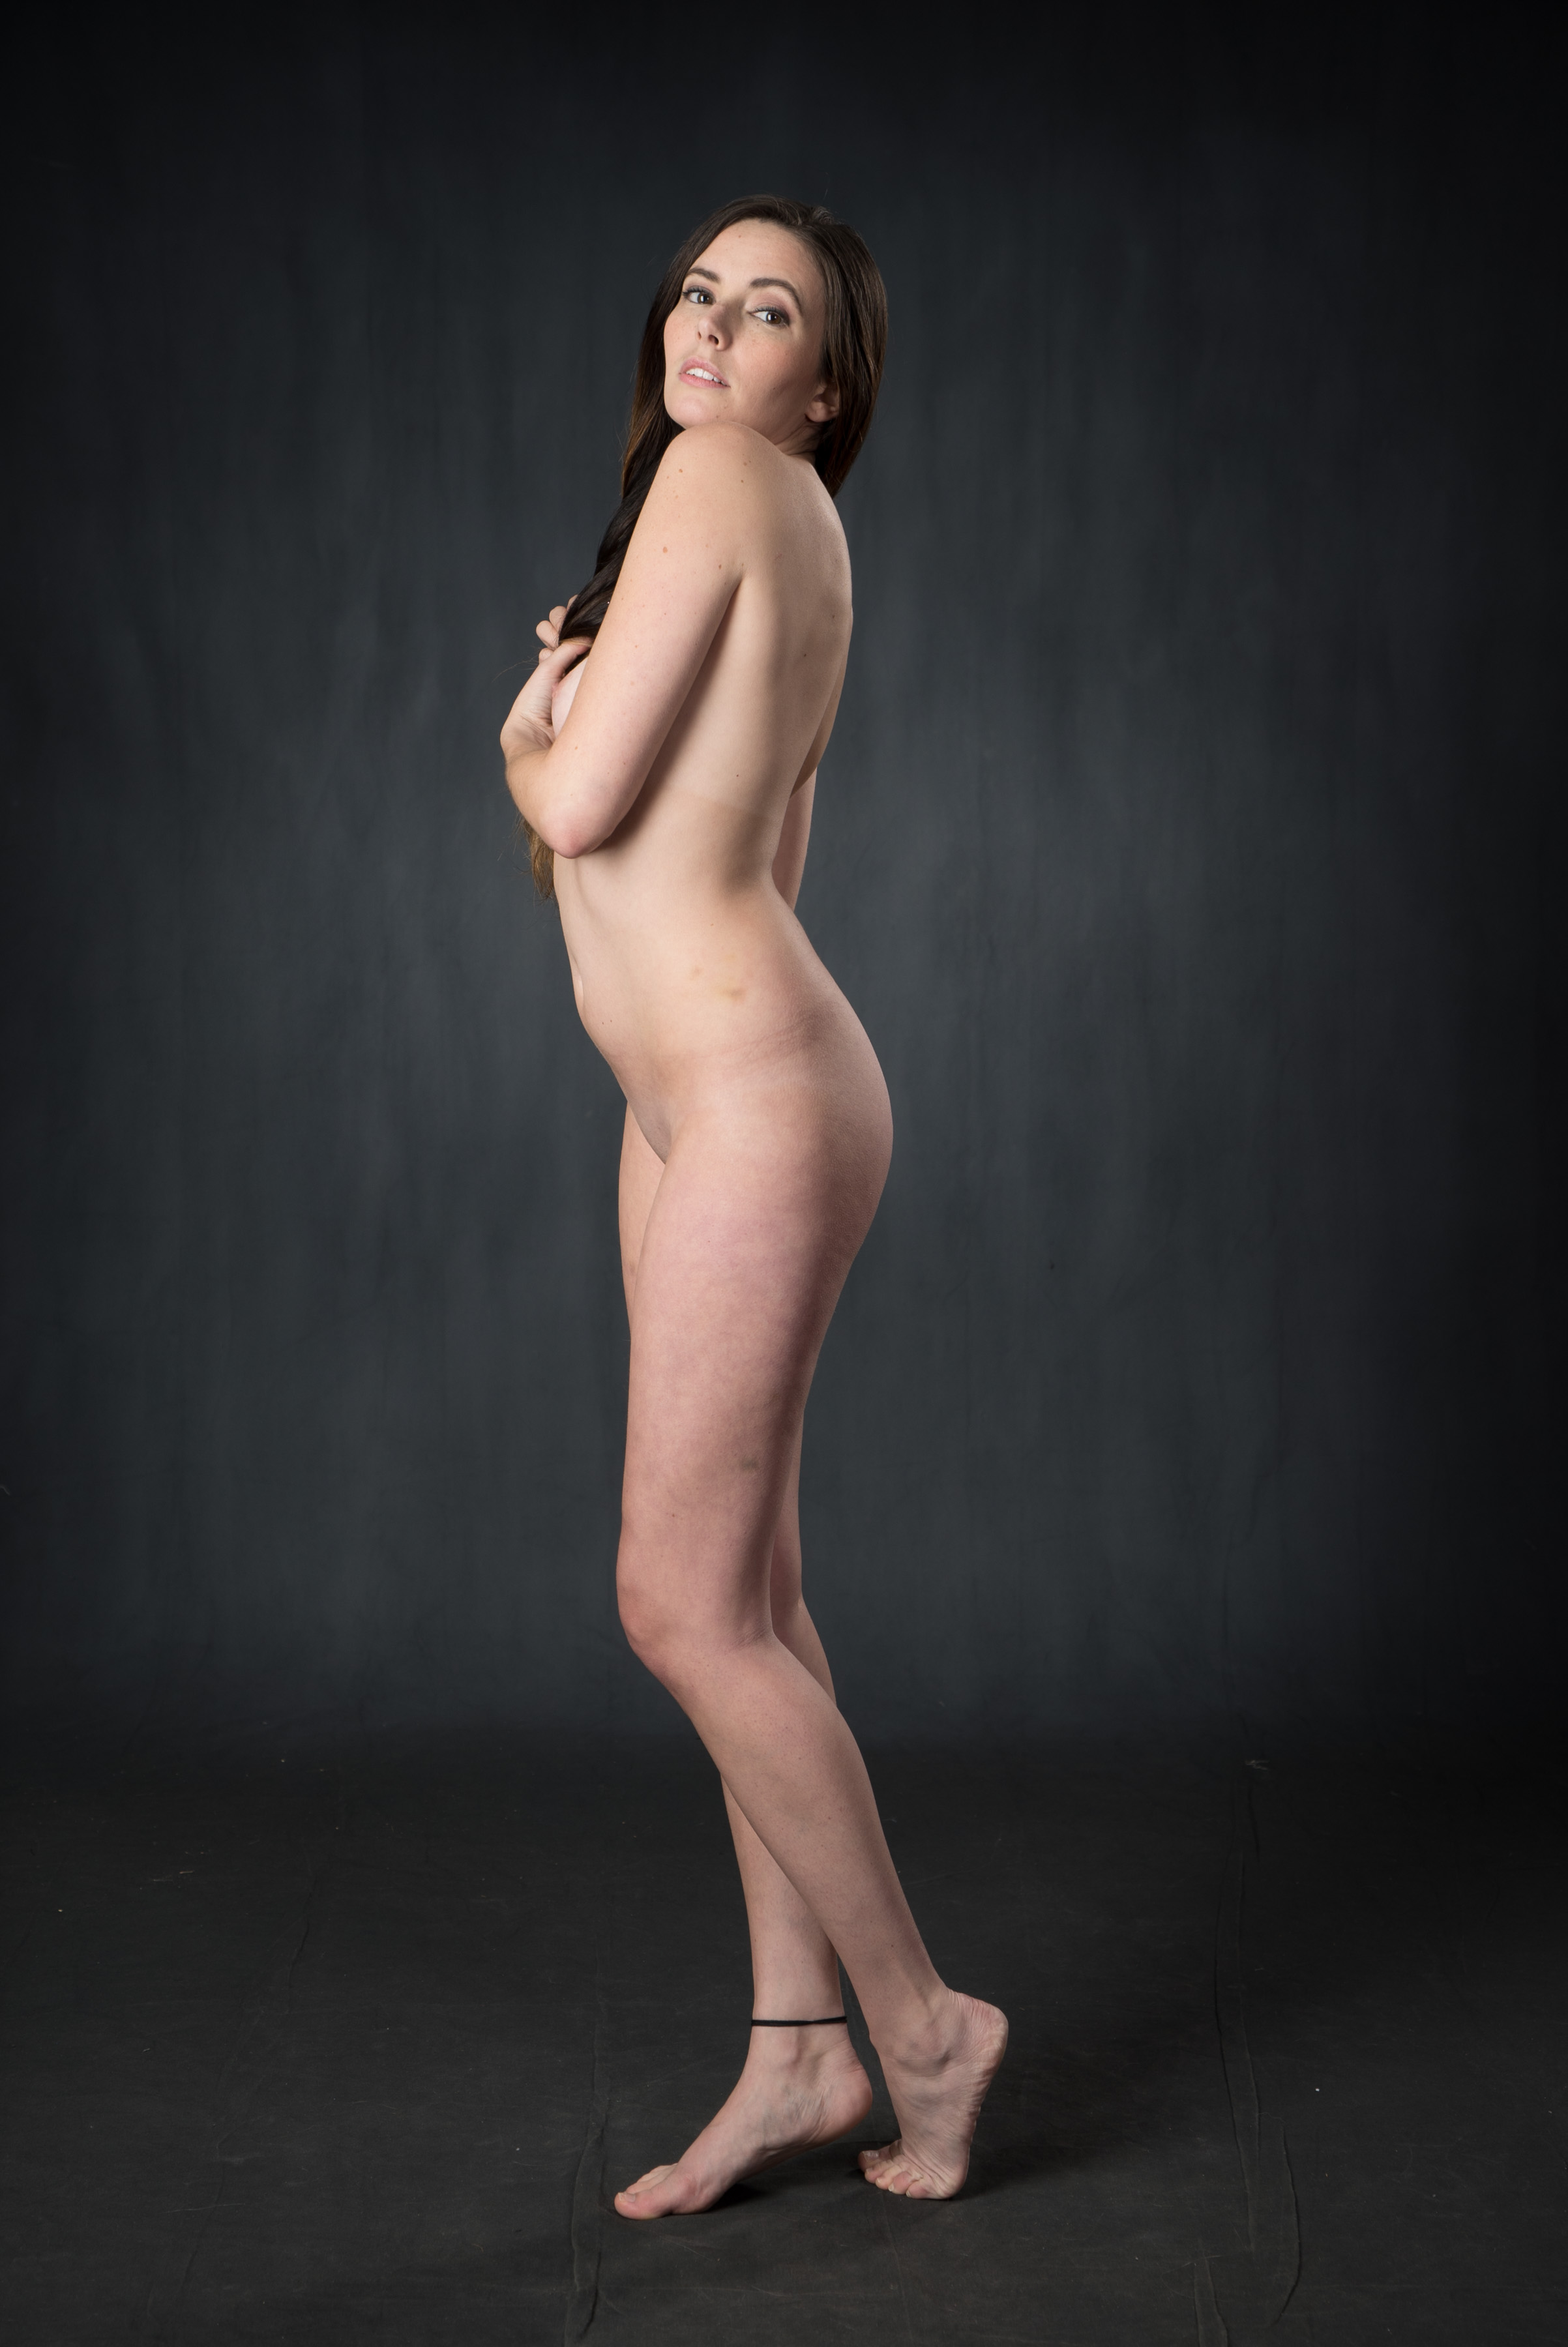 Nude Standing Poses 28